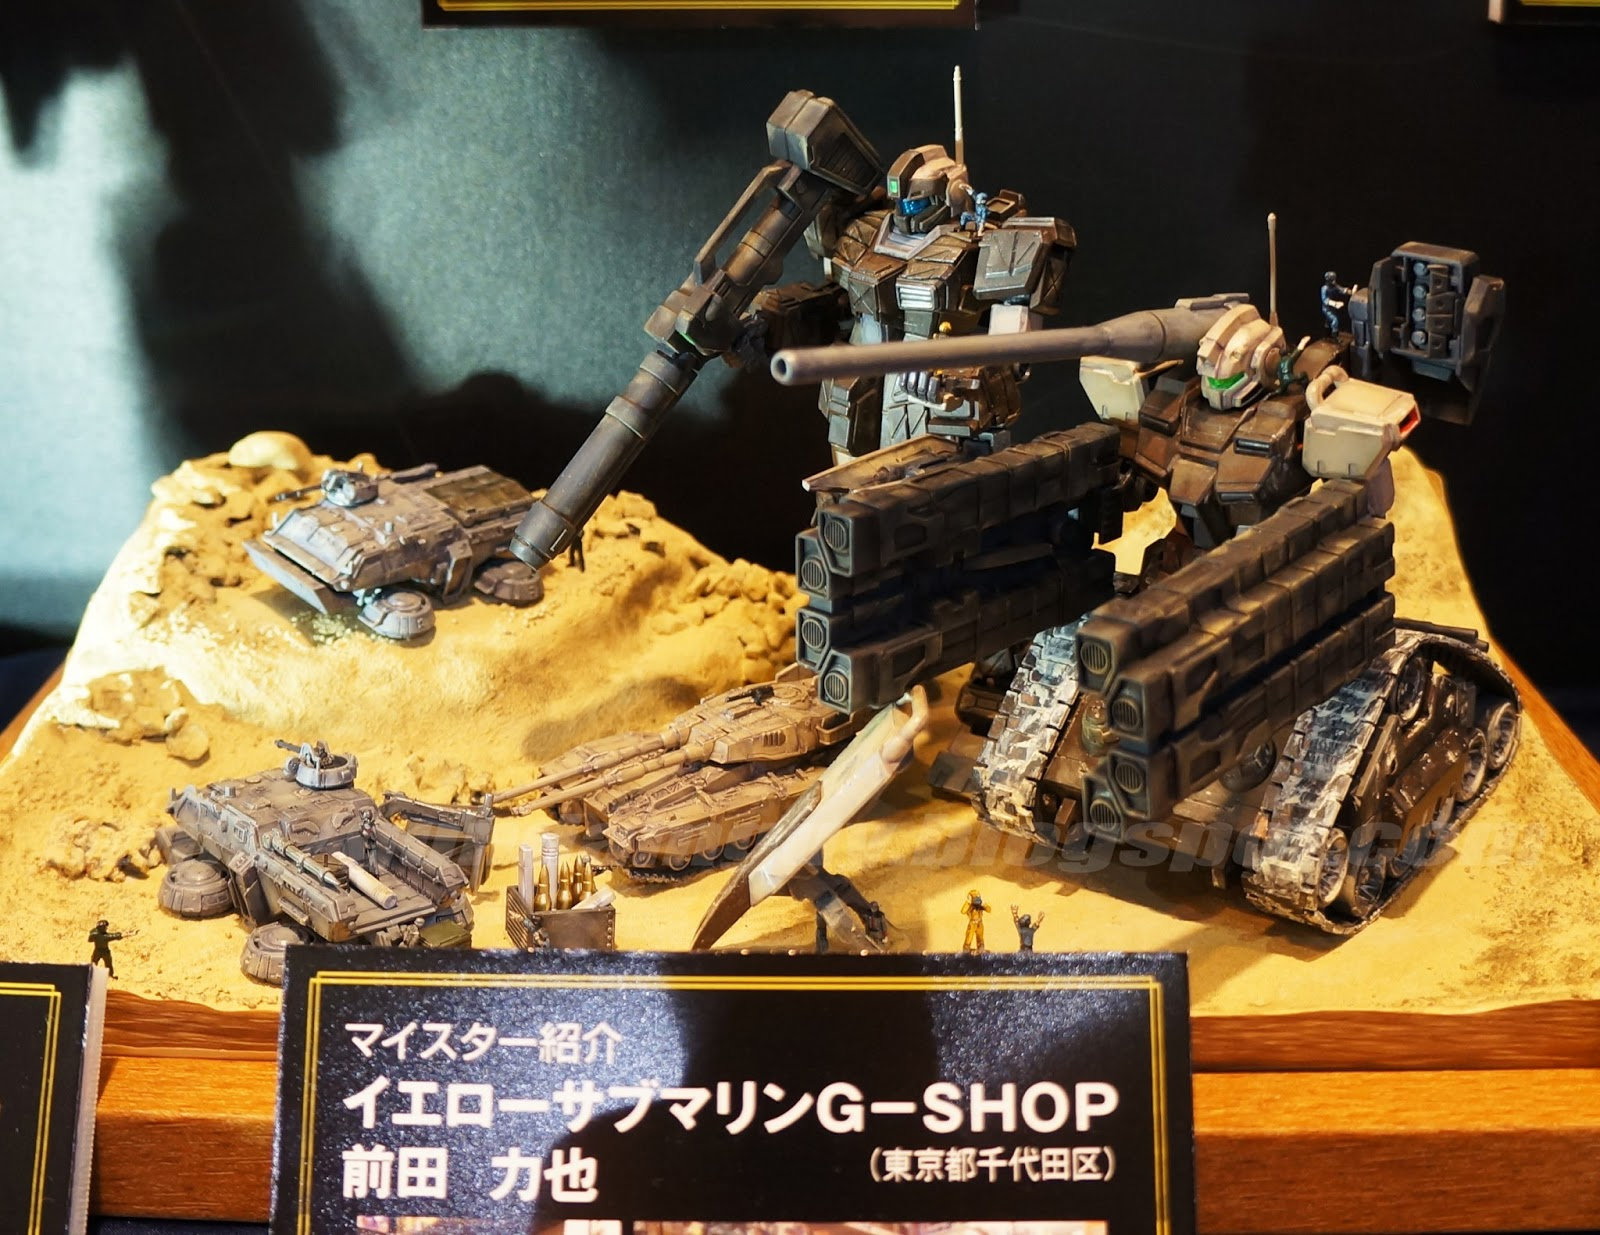 GUNDAM GUY  Bandai Hobby Pro Shop  UC Era Diorama Build   On